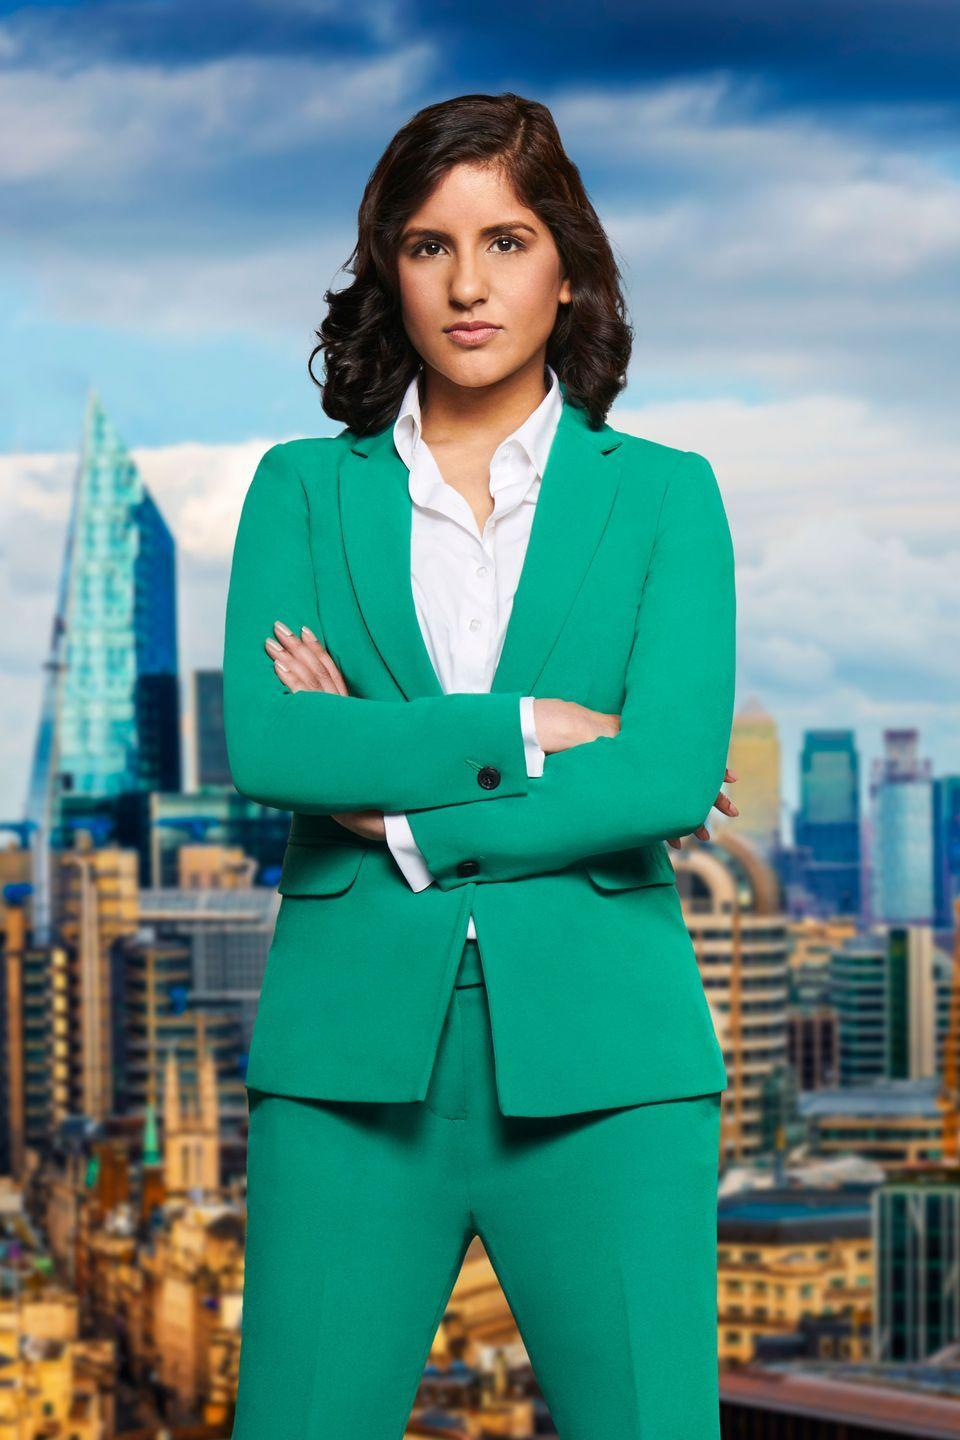 """<p>""""I'm one fierce businesswoman with both sass and class.""""</p><p>Iasha, 27, from Manchester is an account manager who believes her """"crazy, controversial, eccentric personality"""" will make her stand out. Iasha also hopes that other candidates will underestimate her and aims to keep her """"enemies"""" close.</p>"""